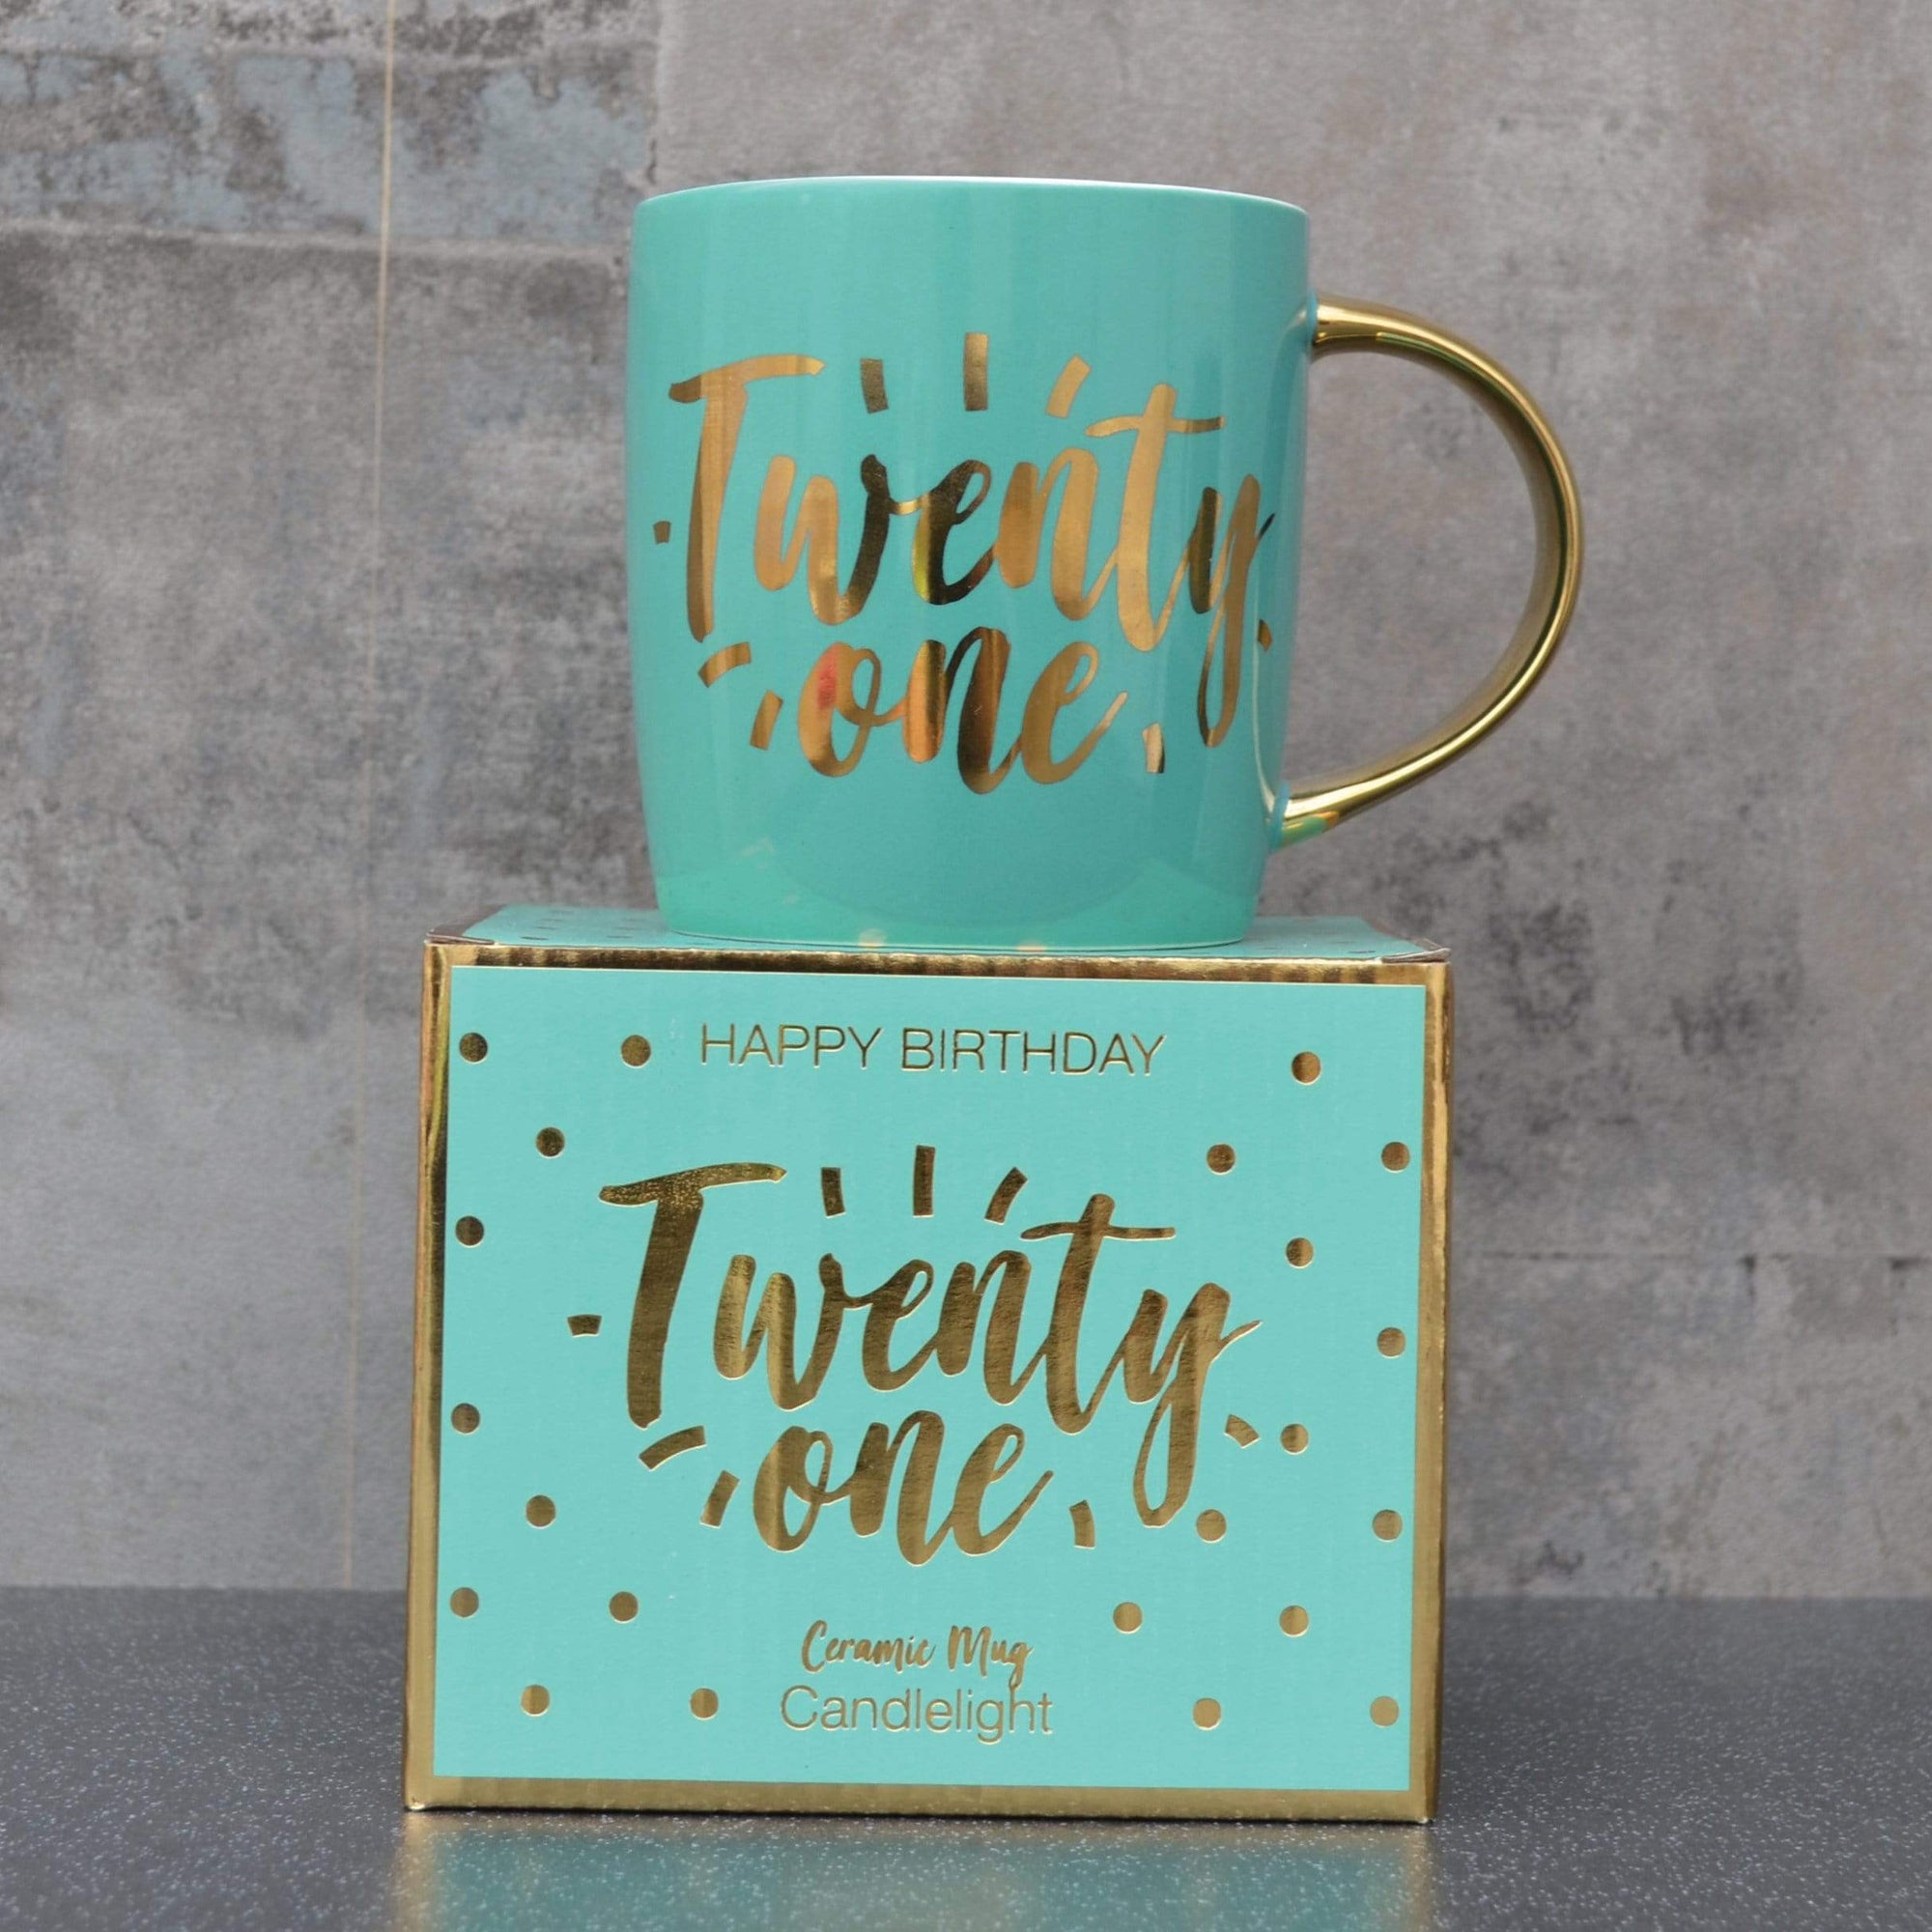 Candlelight Home Mugs Twenty One Milestone Mug in Gift Box Teal 9.2cm 6PK